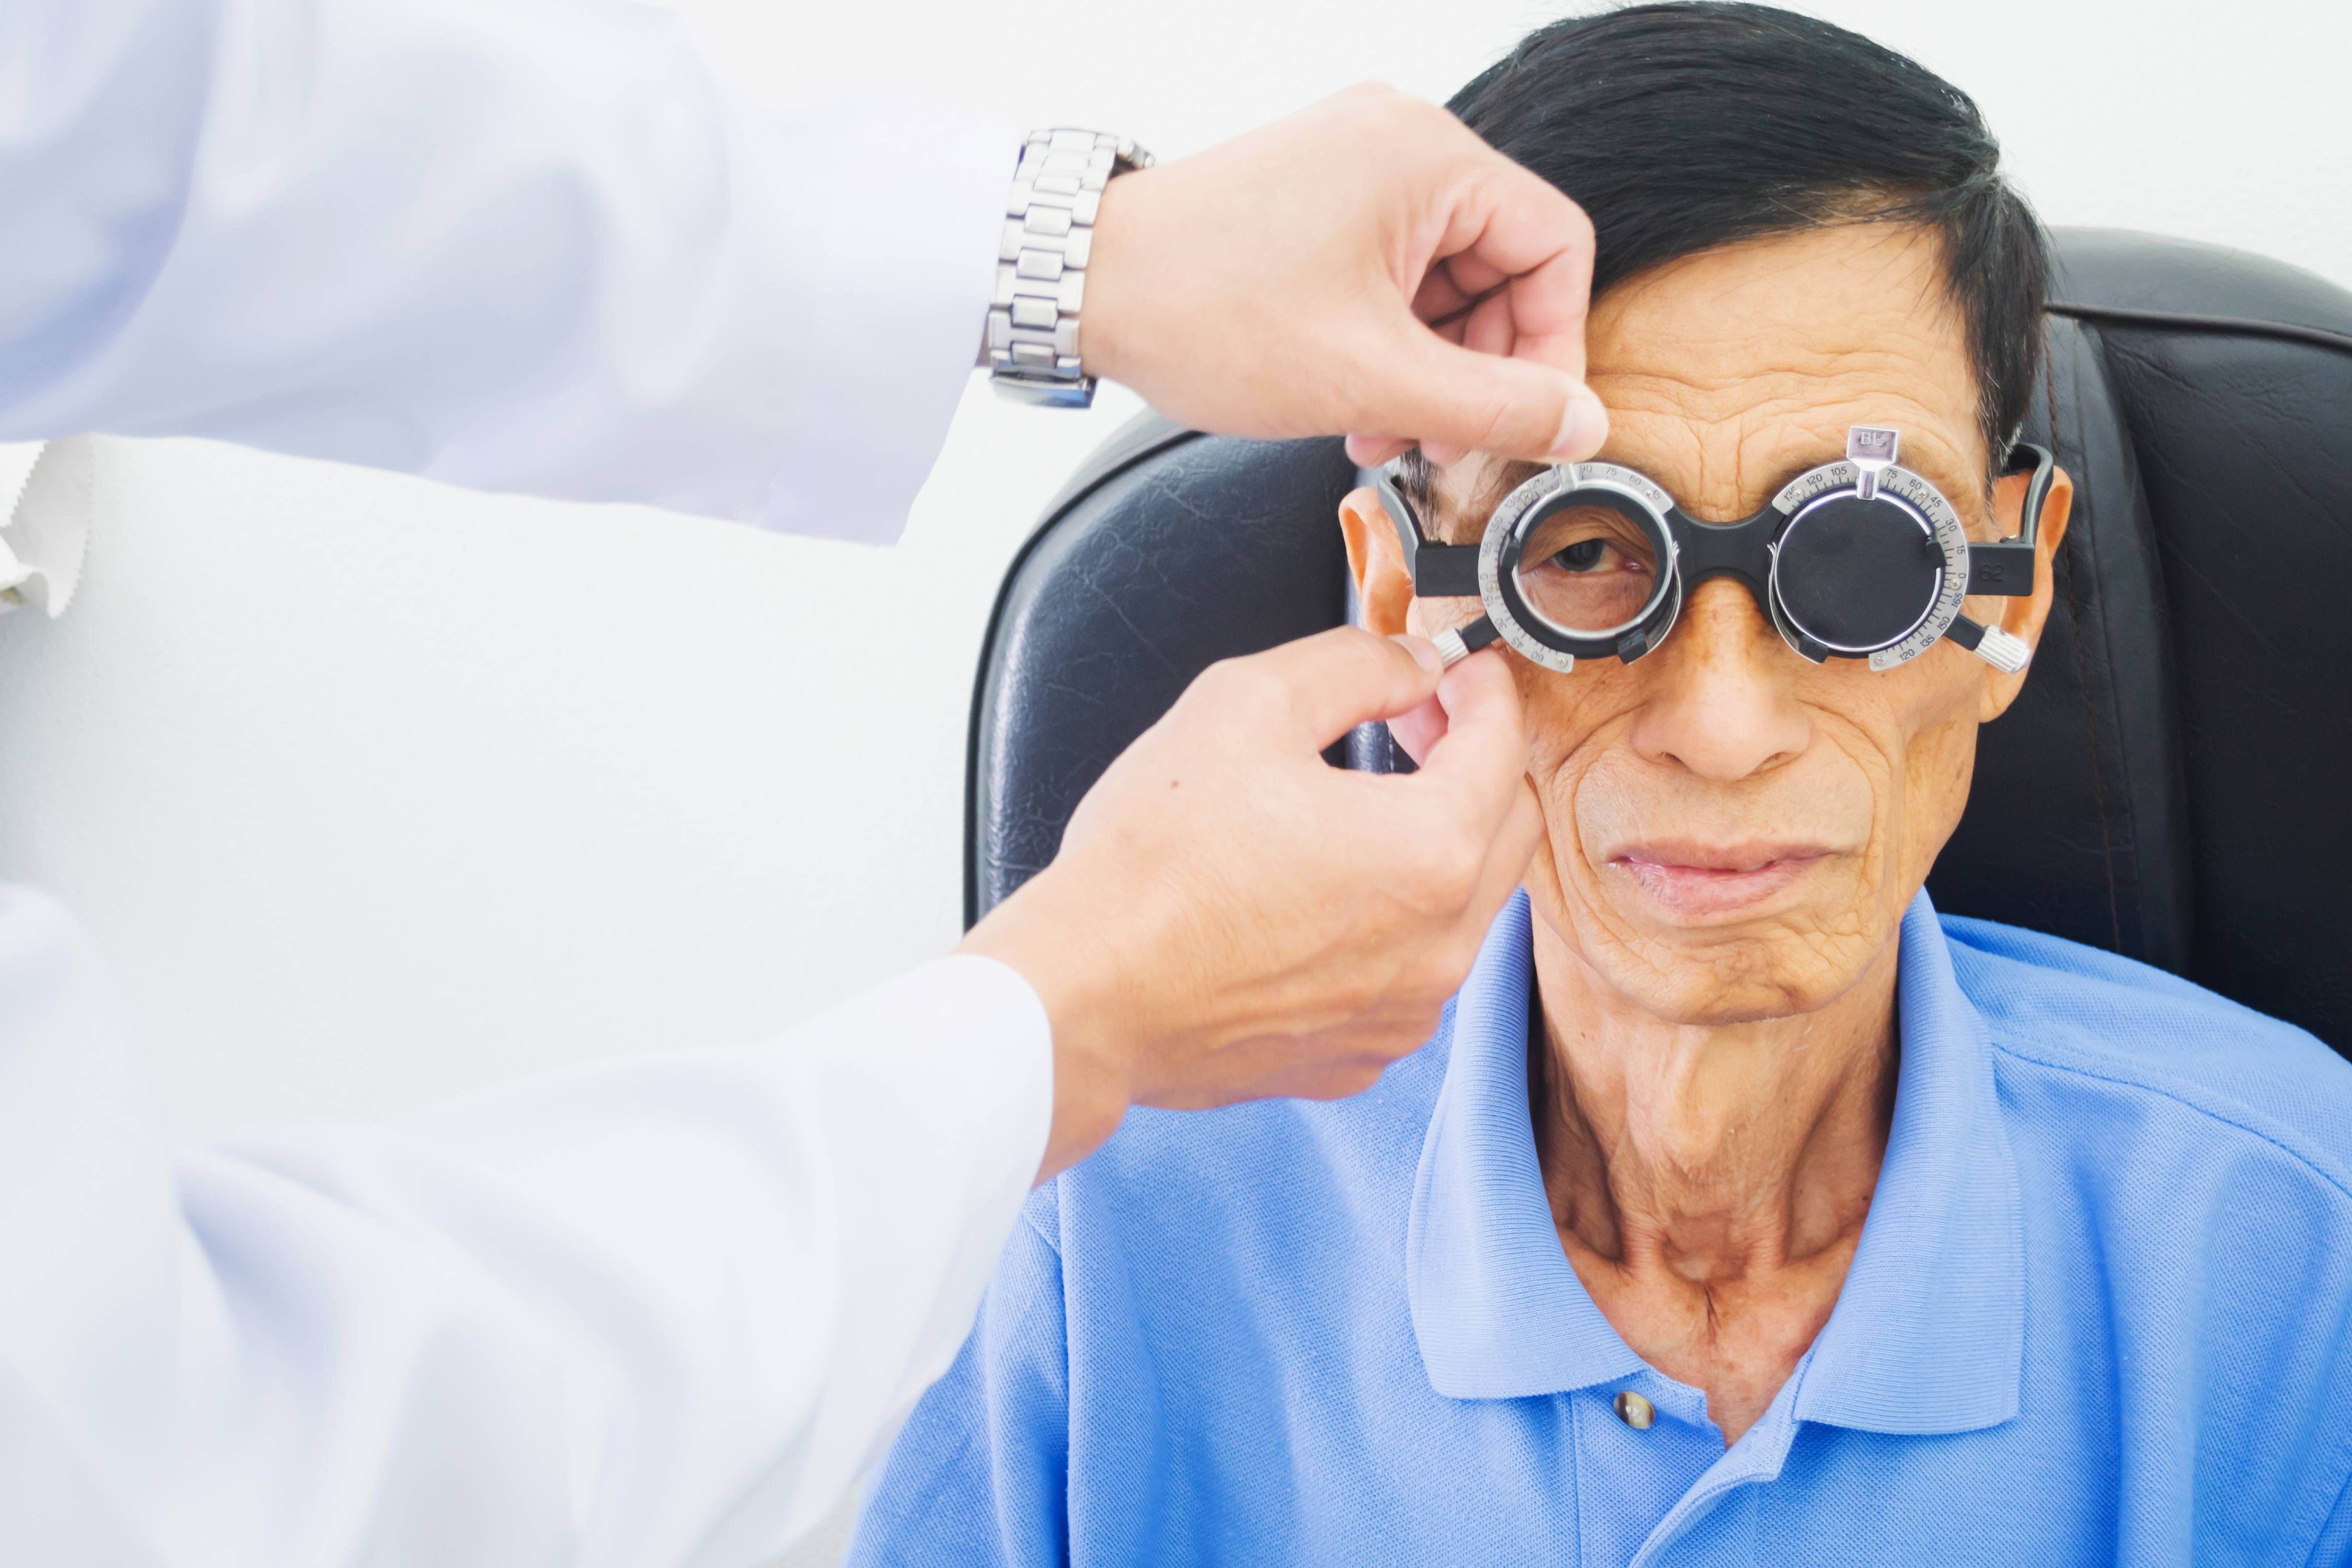 Reduce Eye Strain With the 20-20-20 Rule